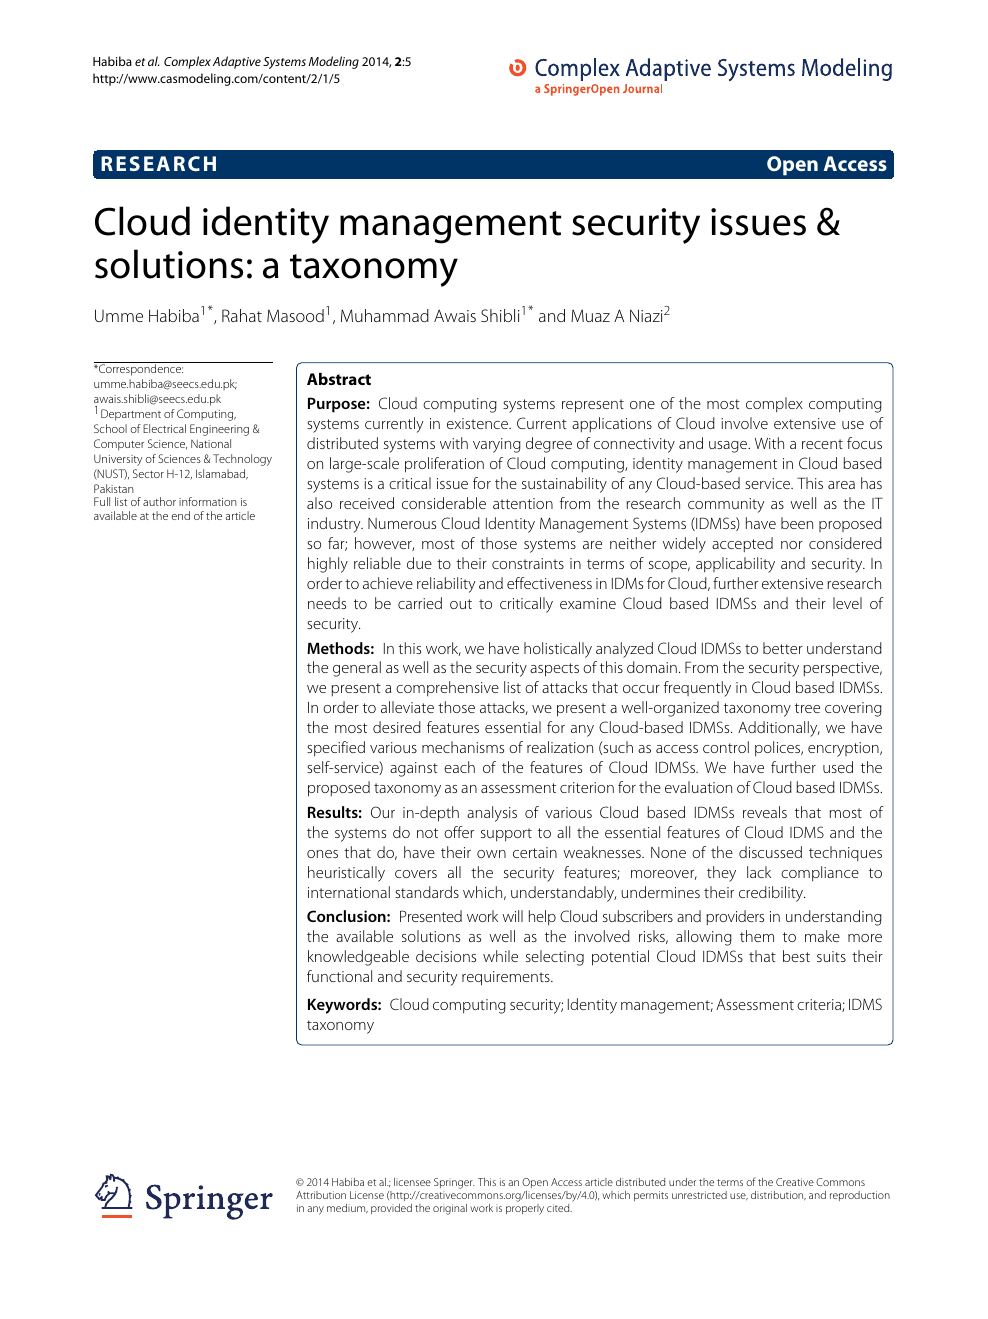 Cloud identity management security issues & solutions: a taxonomy